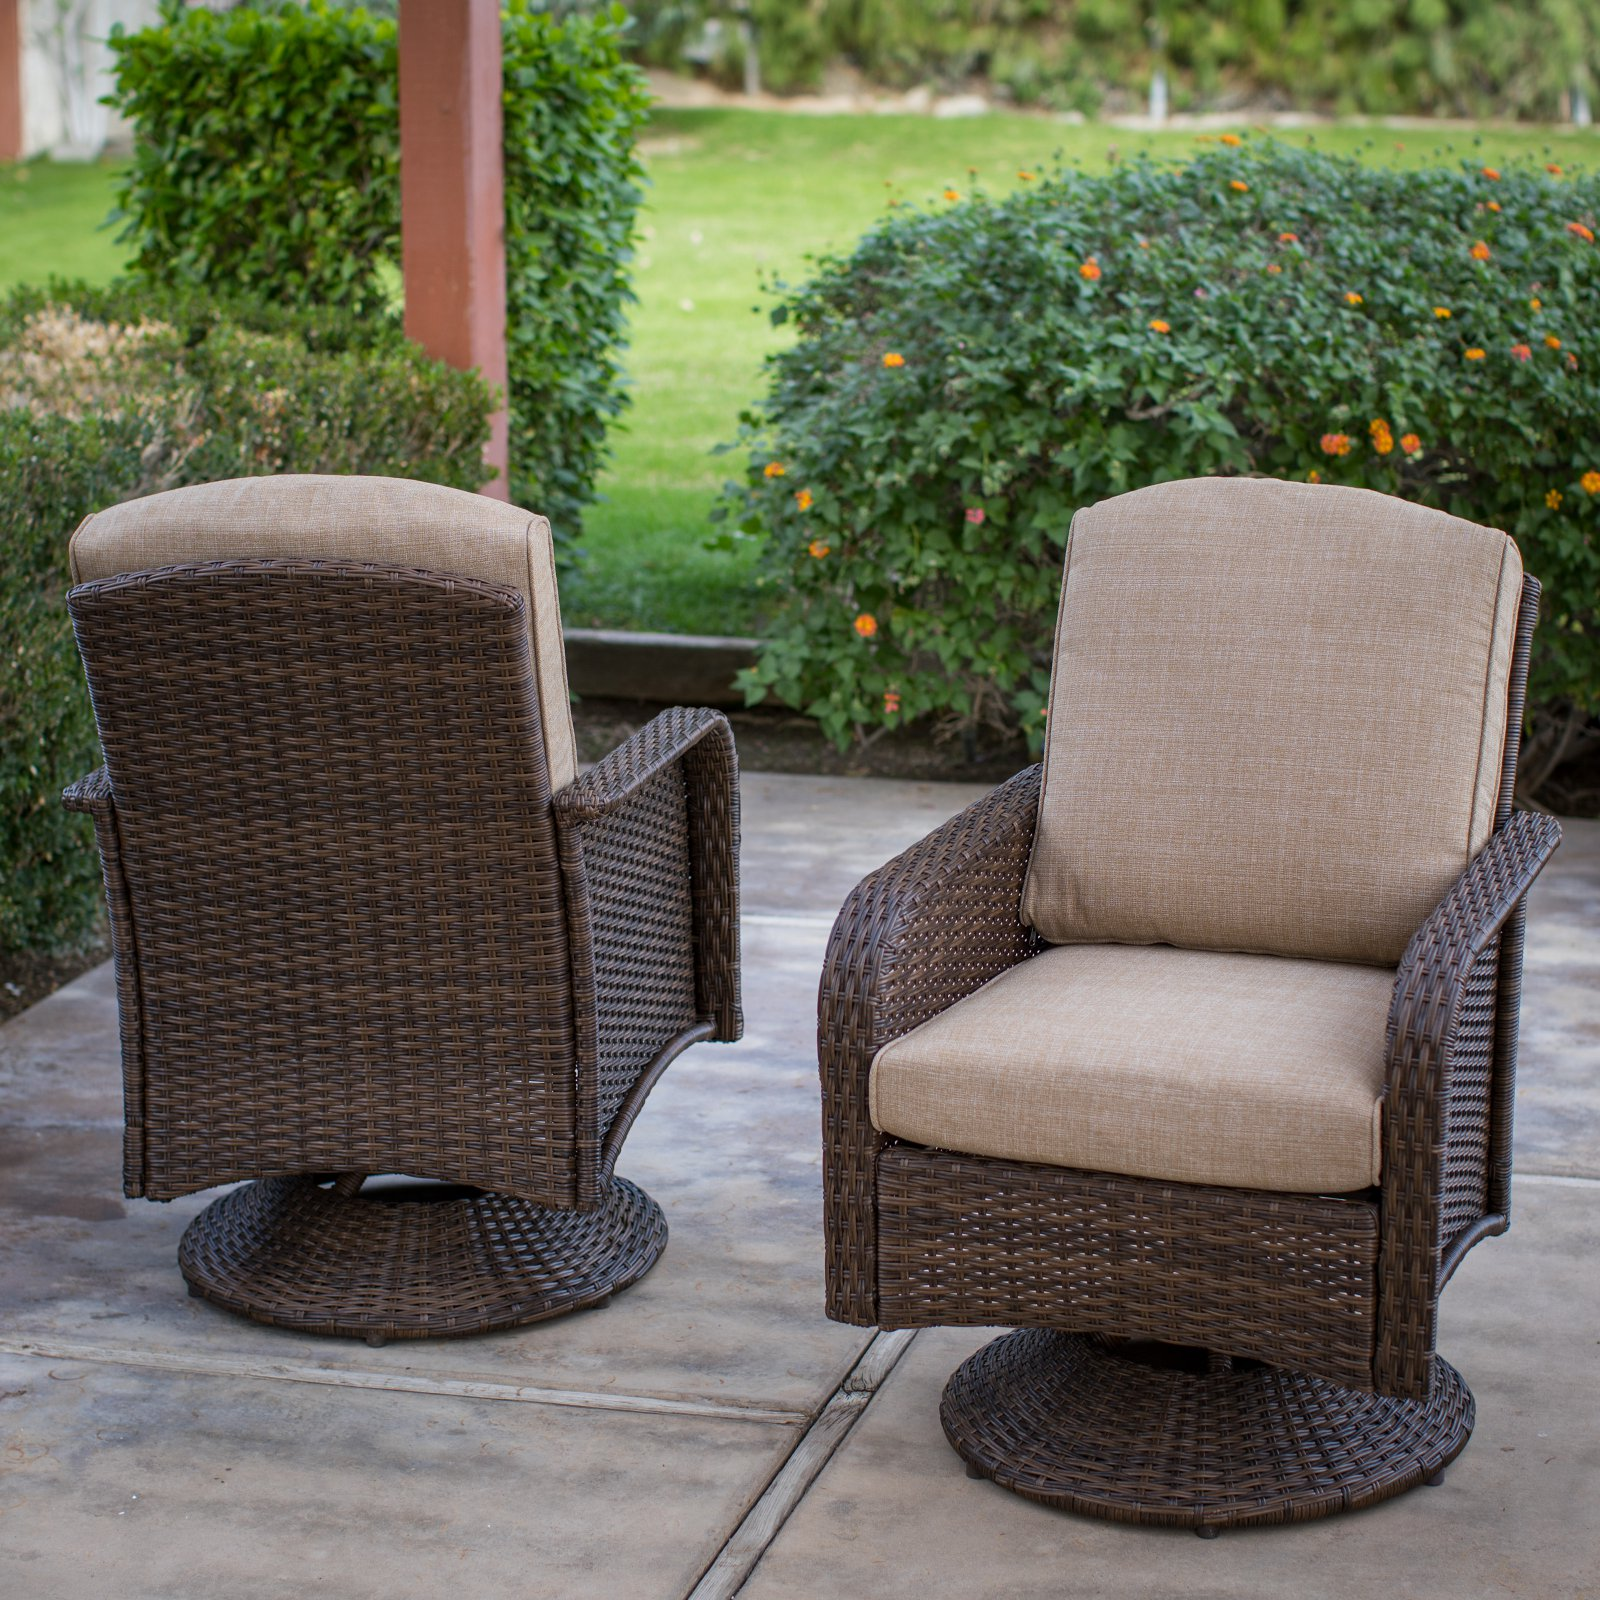 Coral Coast Tiara Garden All Weather Wicker Patio Swivel Dining Chairs - Set of 2